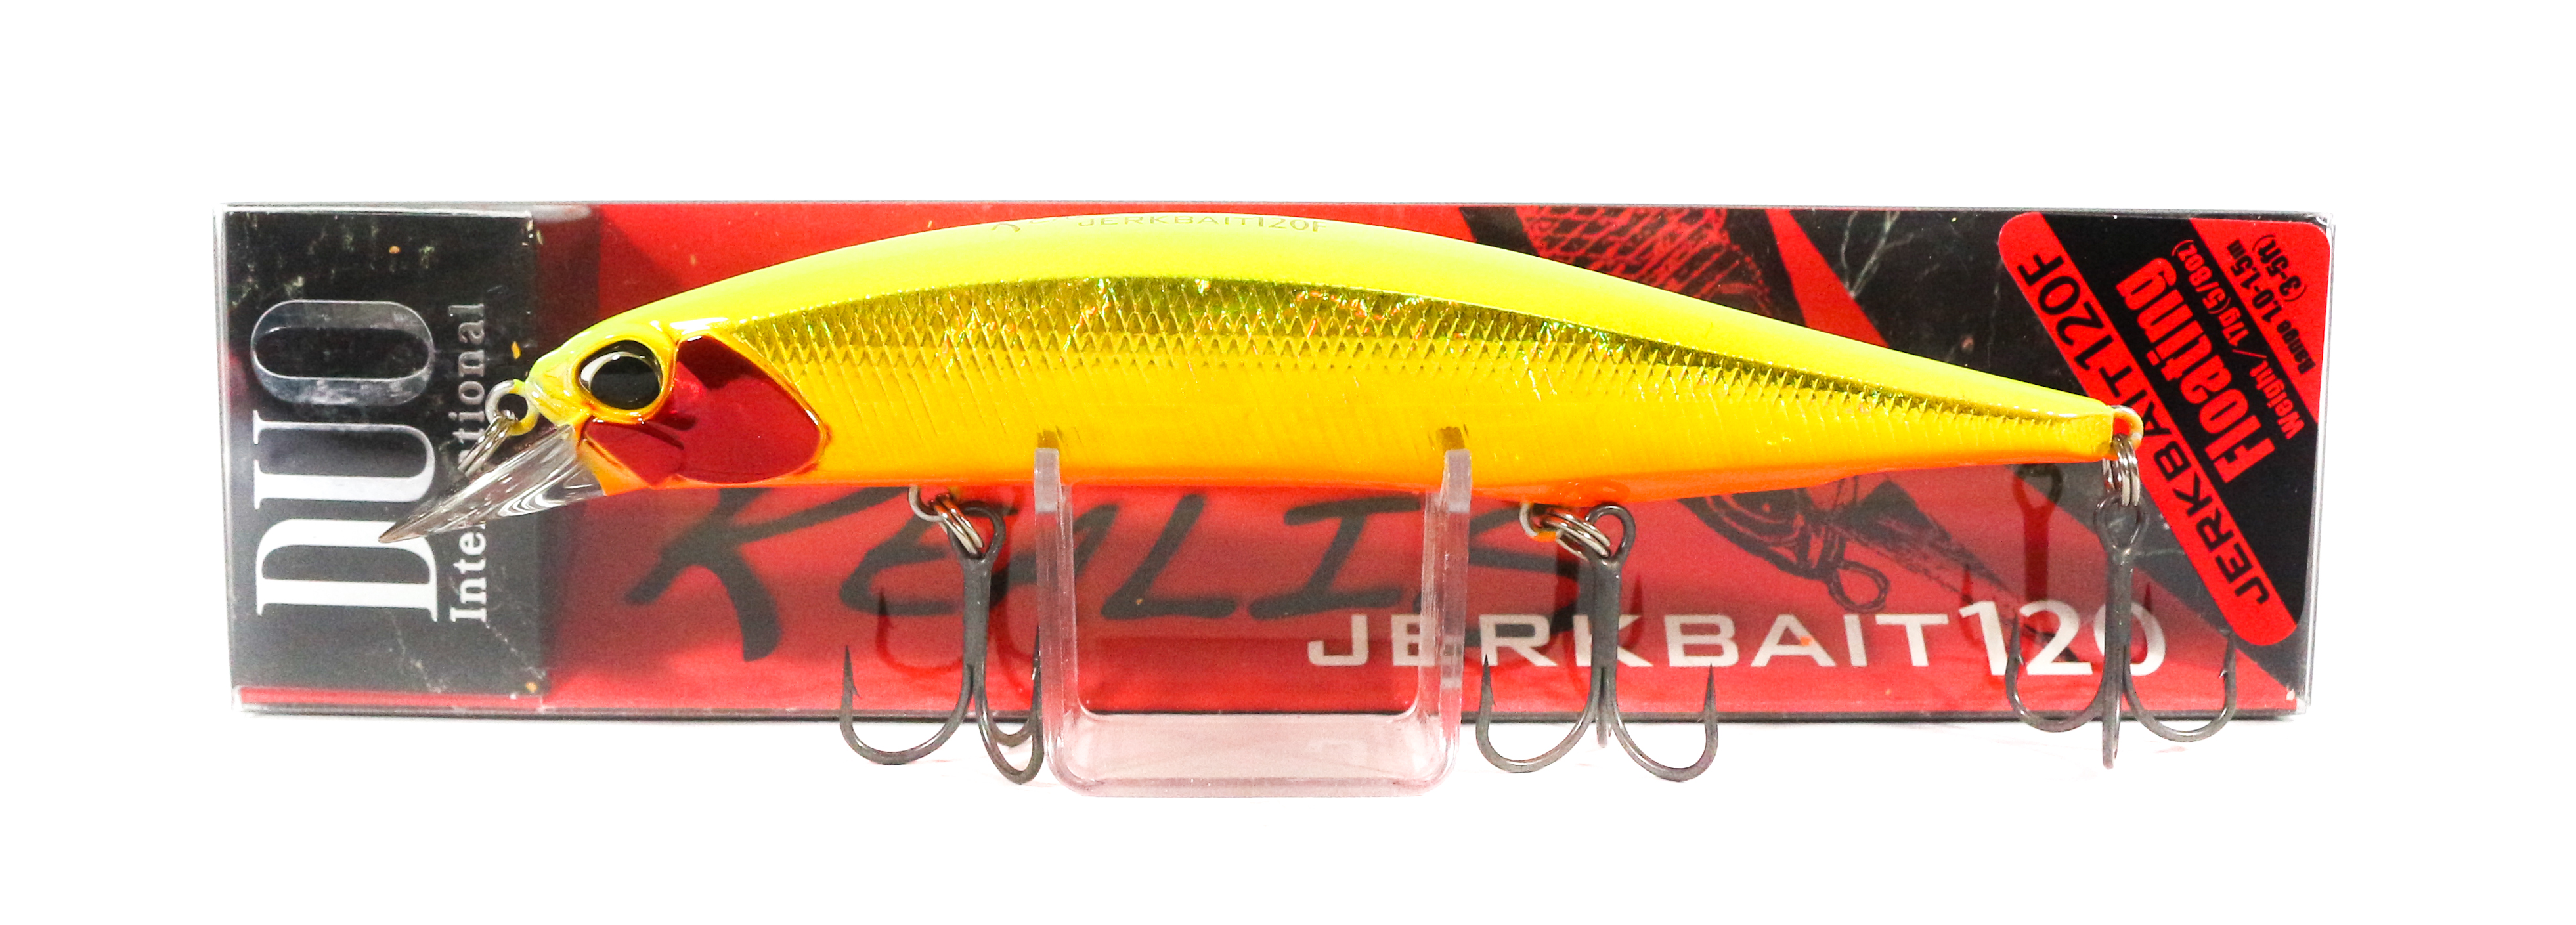 Duo Realis Jerkbait 120F Floating Lure ADA3121 (8423)